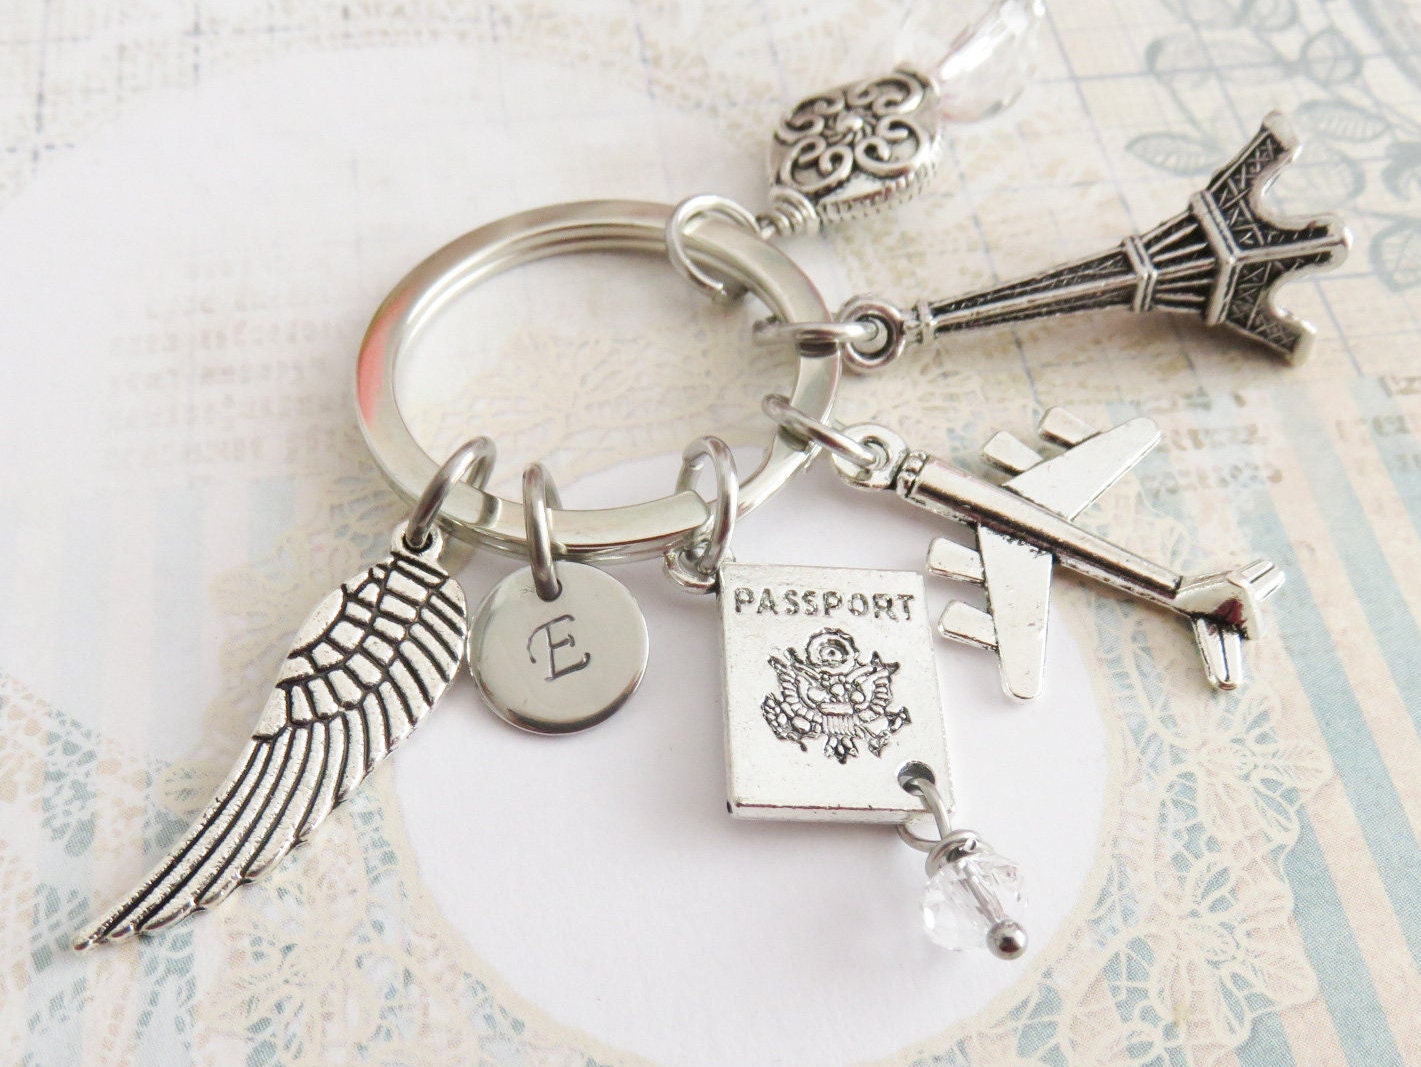 airplane keychain personalized travel keychains gift for traveler